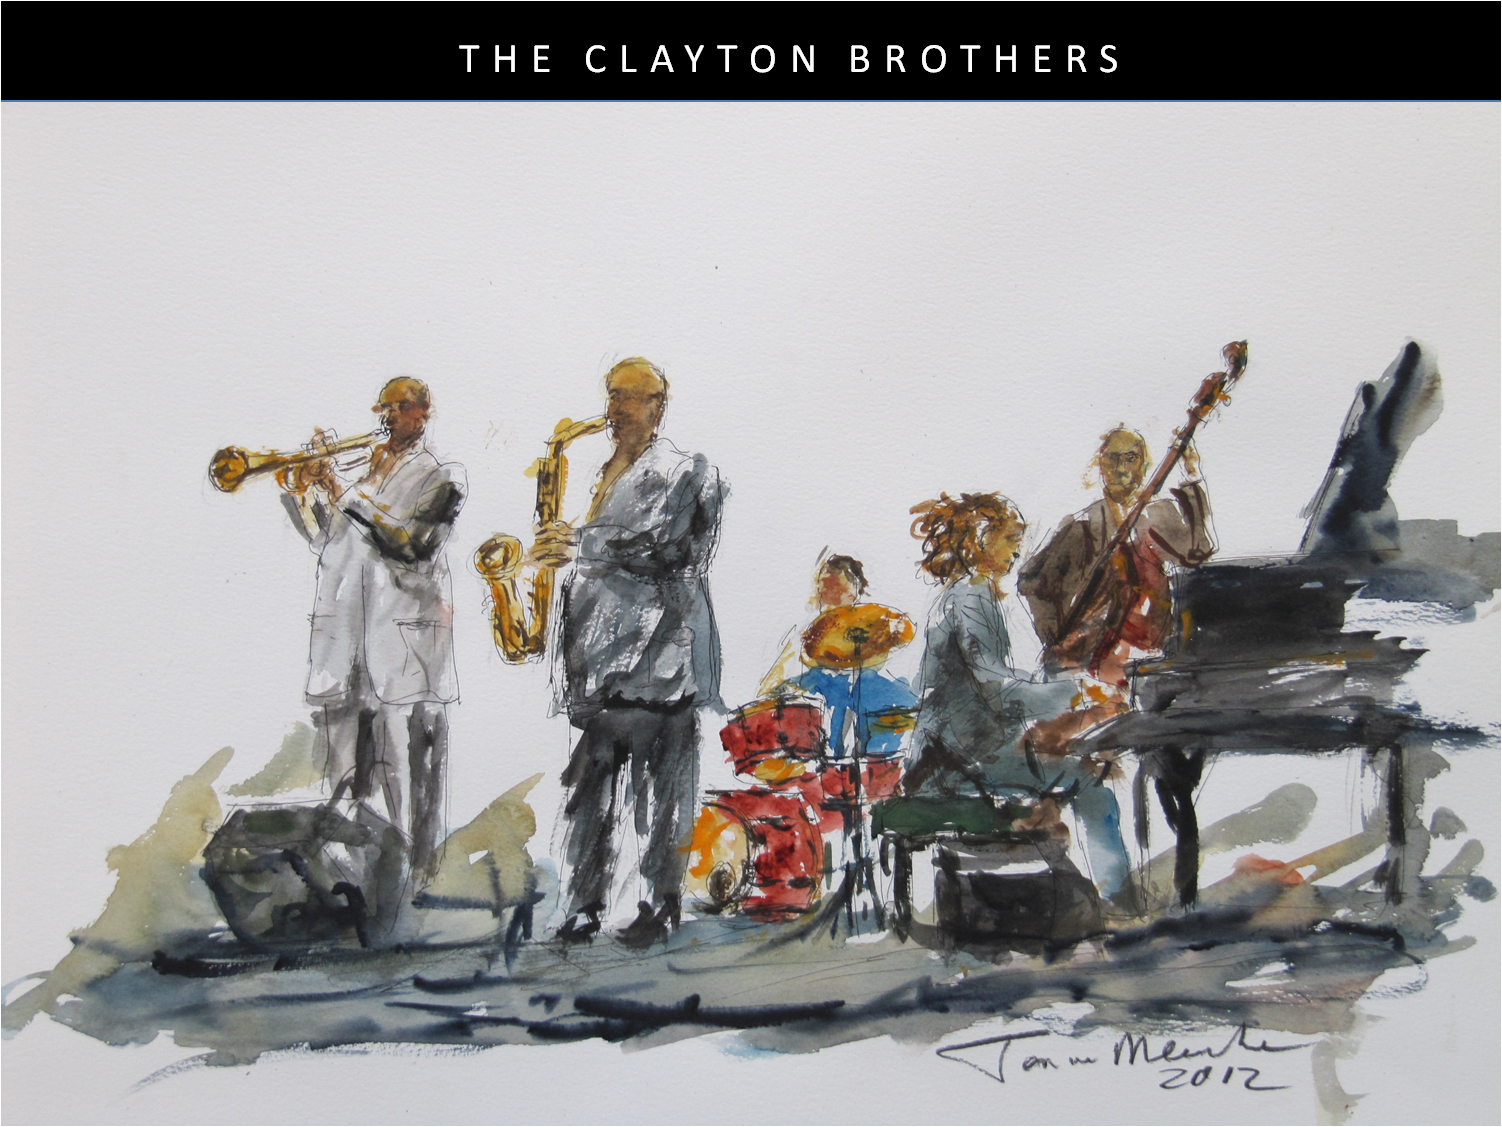 CLAYTONBROTHERS 2